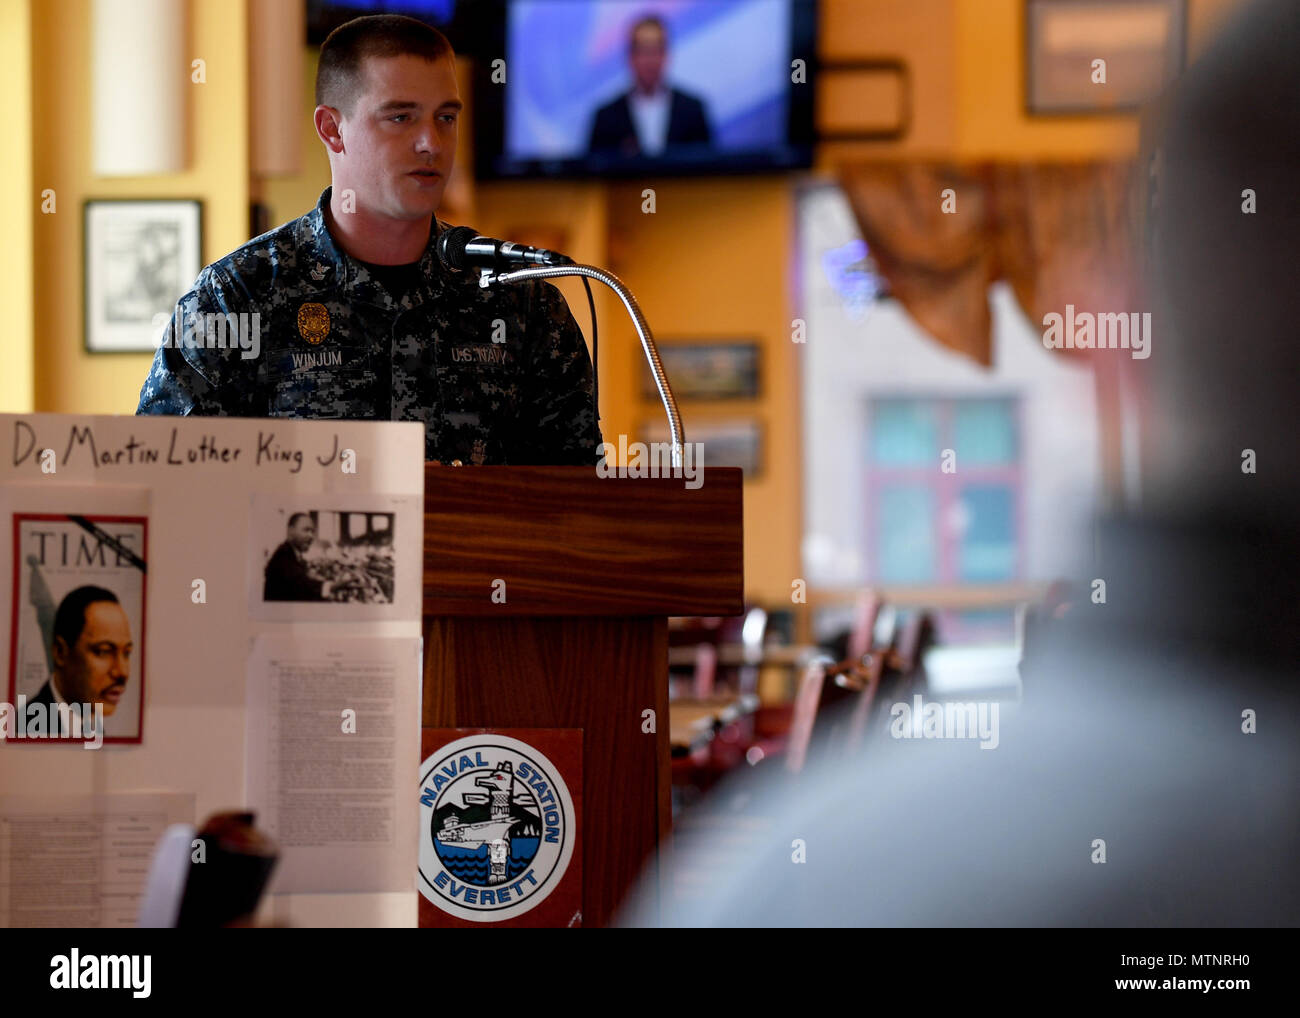 170113-N-WX604-010 EVERETT, Wash. (Jan. 13, 2017)  Master-at-Arms 1st Class John Winjum, assigned to Naval Station Everett (NSE) Security Forces, speaks at a Martin Luther King Jr. Day remembrance ceremony at the All-American Restaurant on base. Dr. King was a civil rights activist who worked to end racial segregation in the United States. (U.S. Navy photo by Mass Communication Specialist 3rd Class Joseph Montemarano/Released) - Stock Image